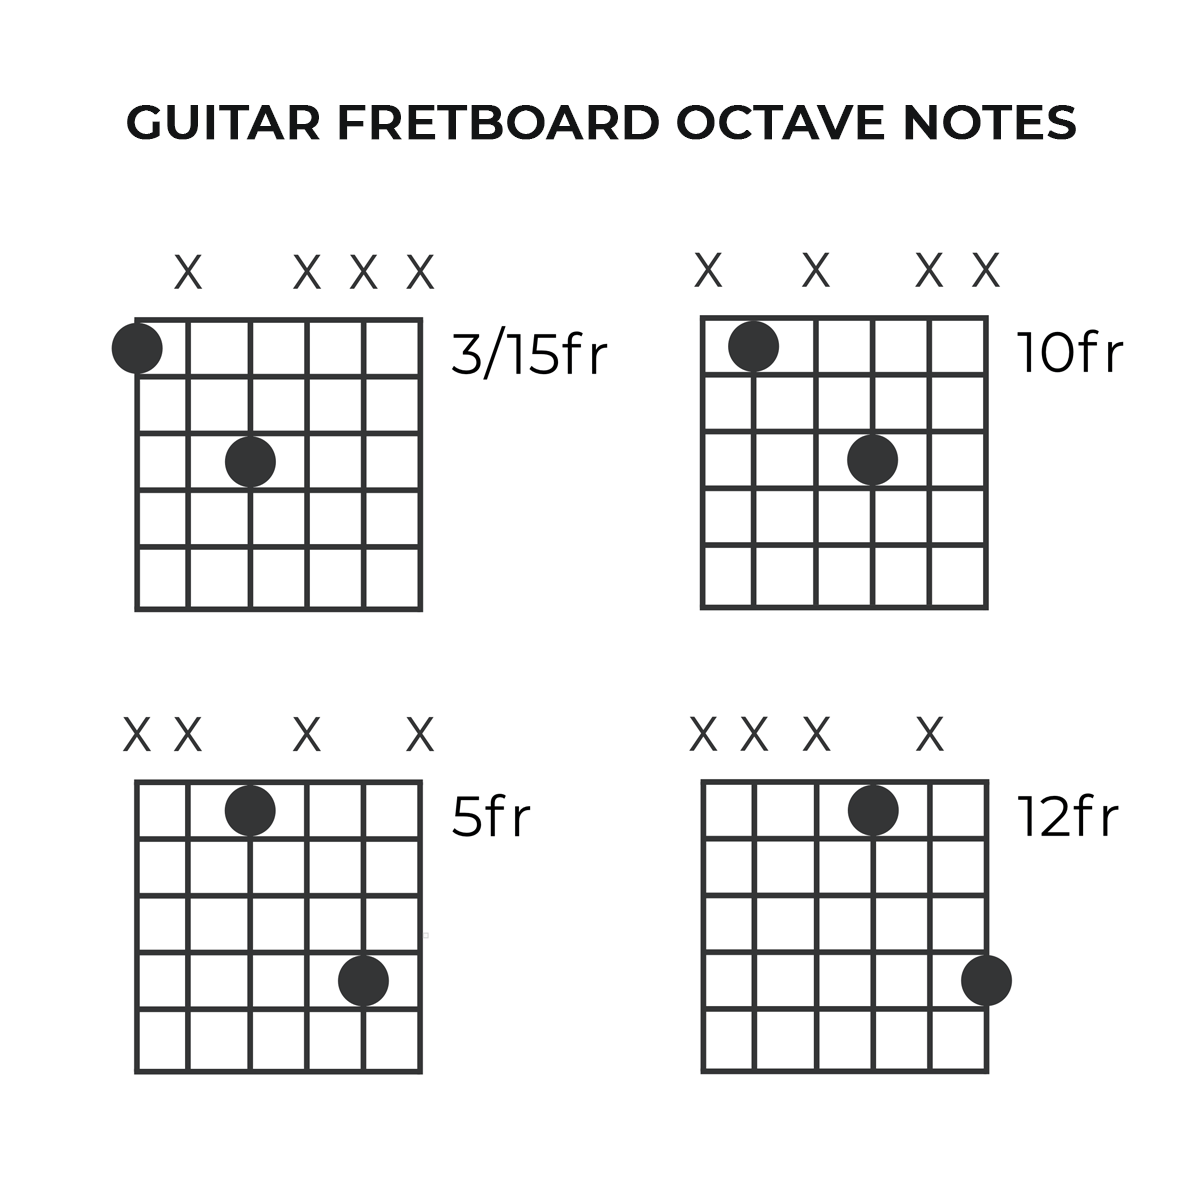 Guitar Octave Notes